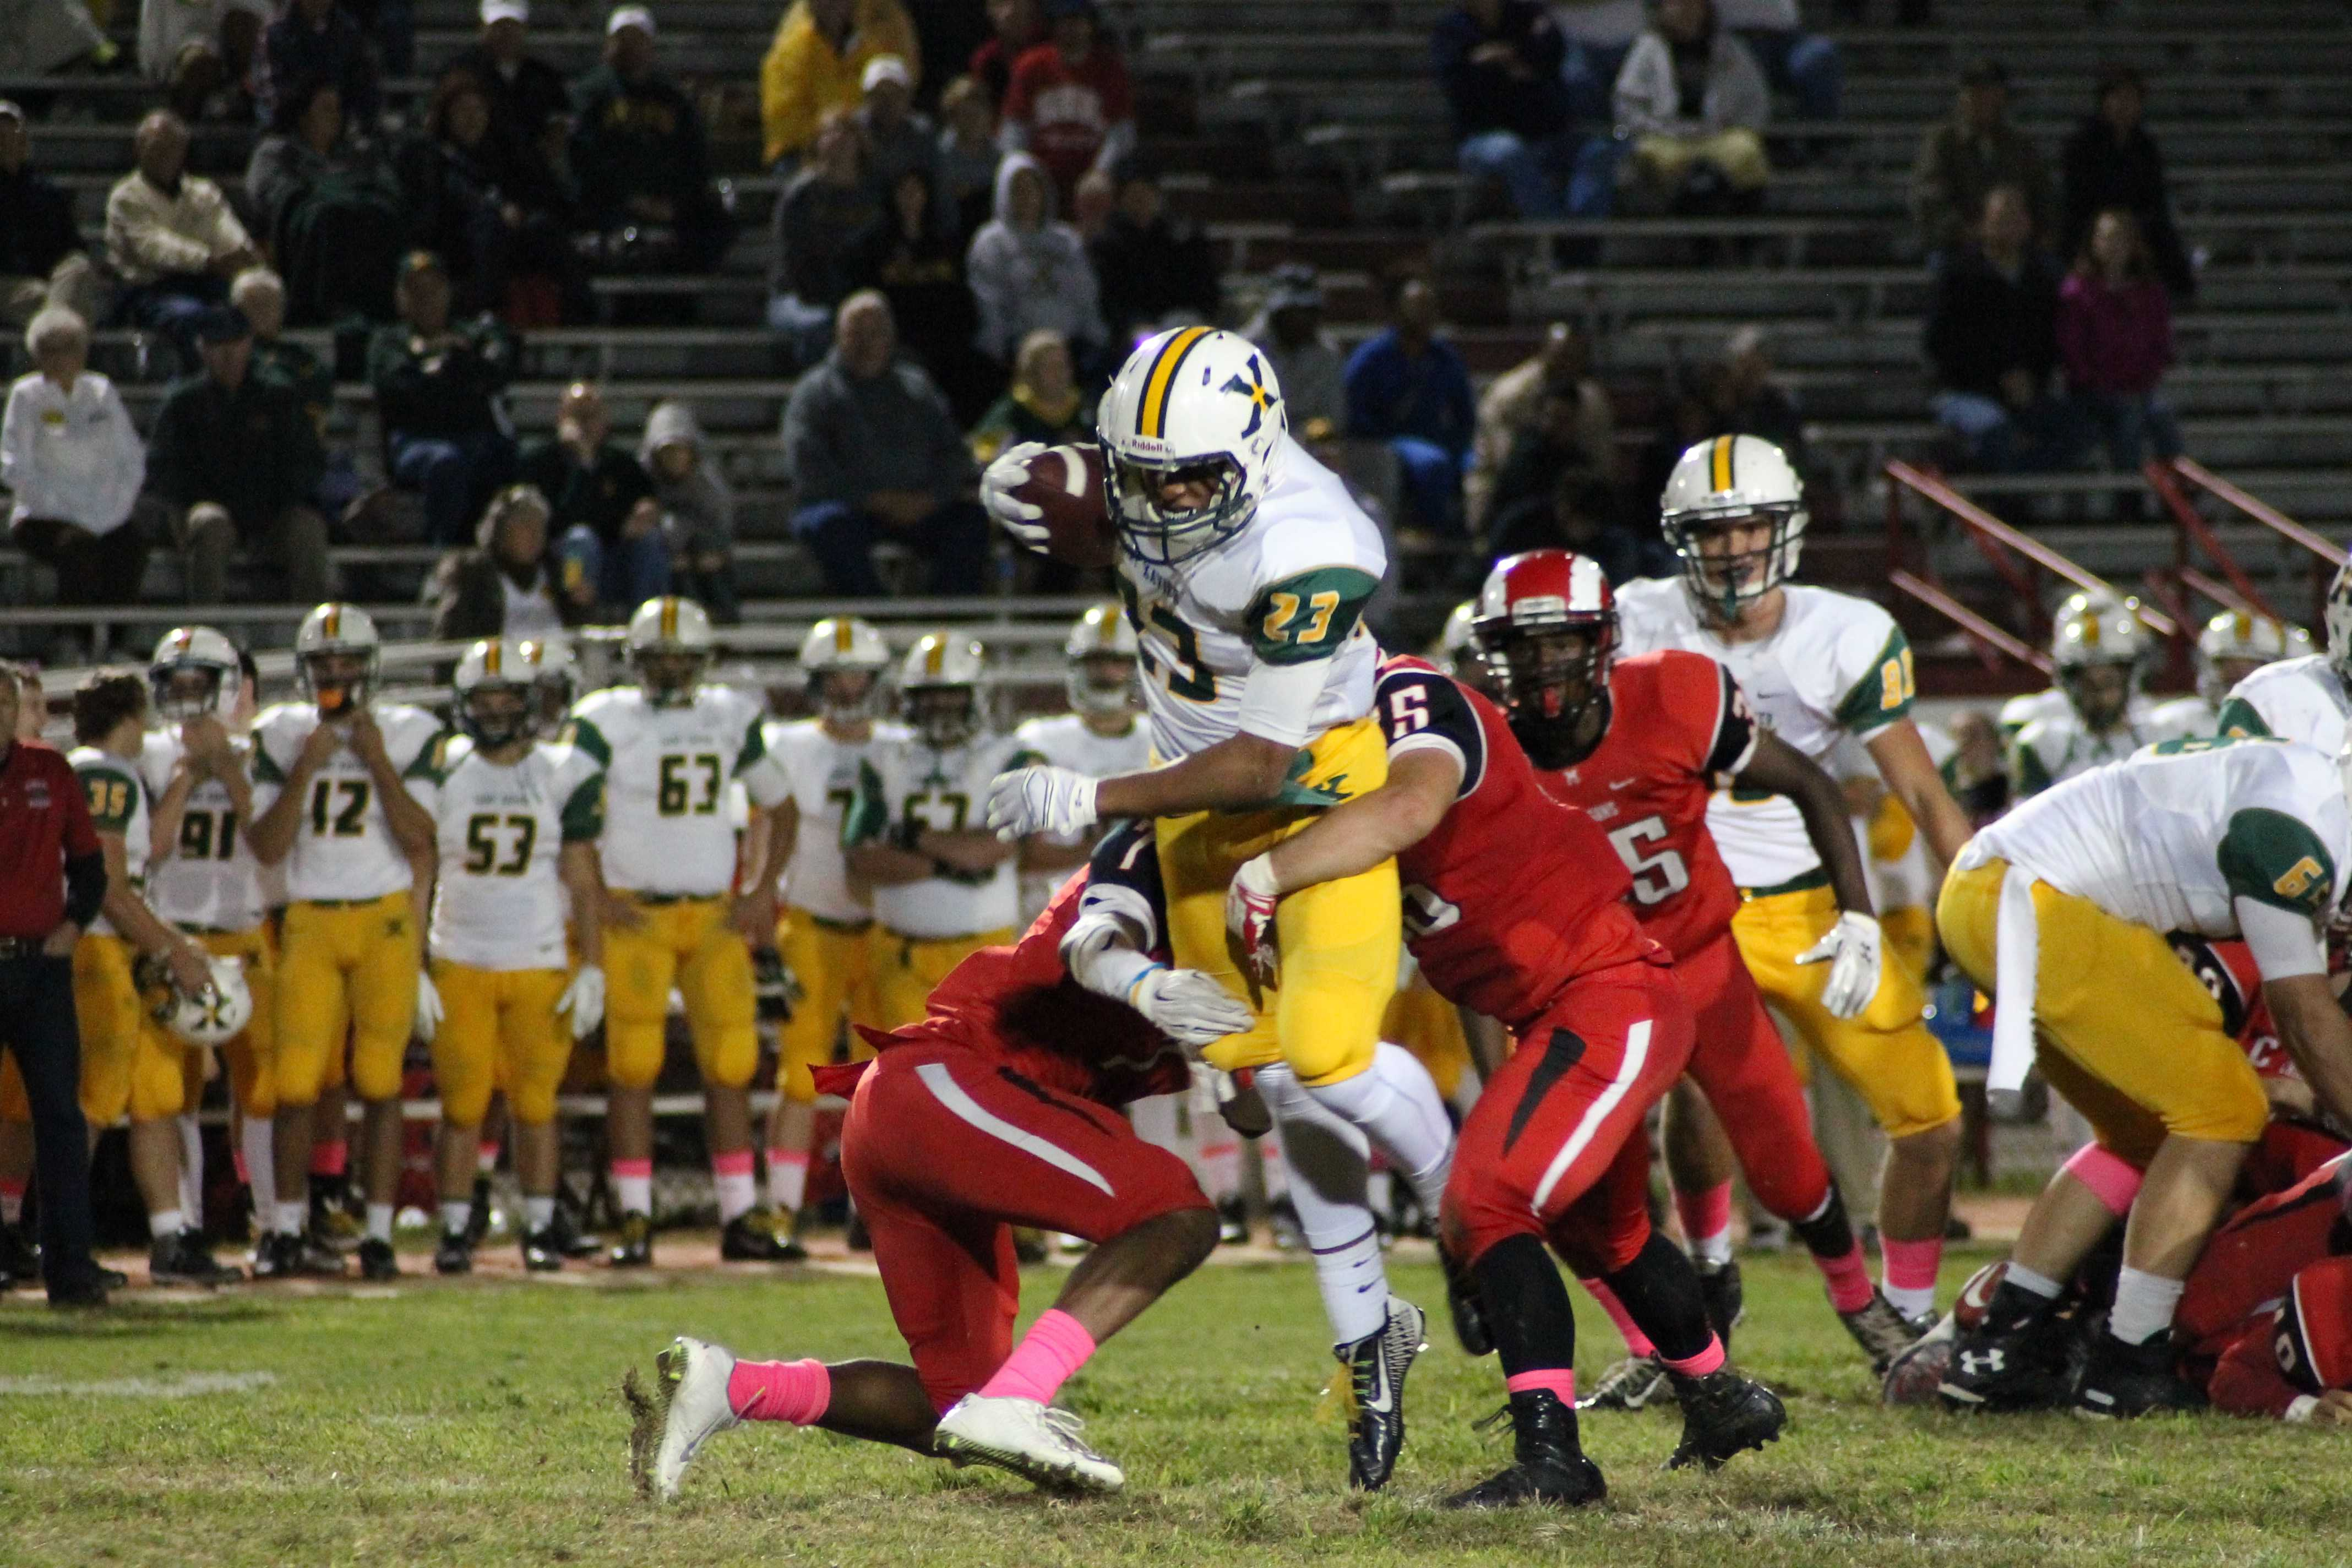 Same ol' story: St. X notches 27th straight win over Manual